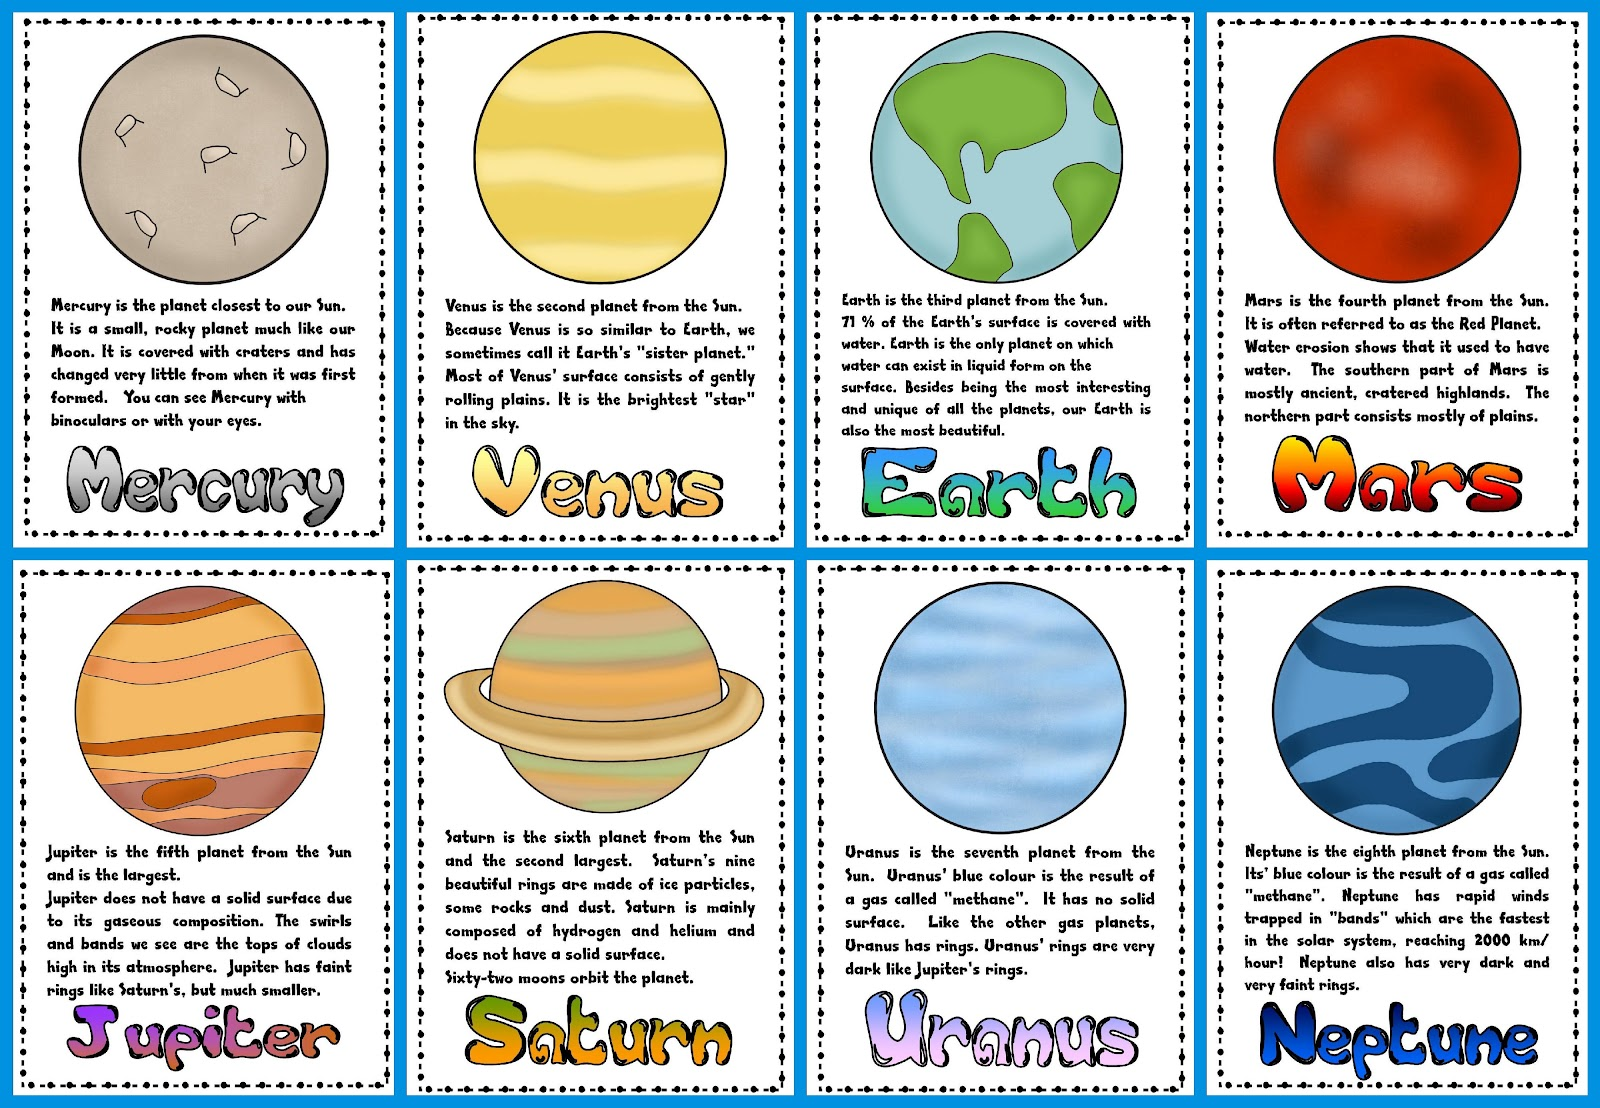 Planets clipart collage. Time off work and